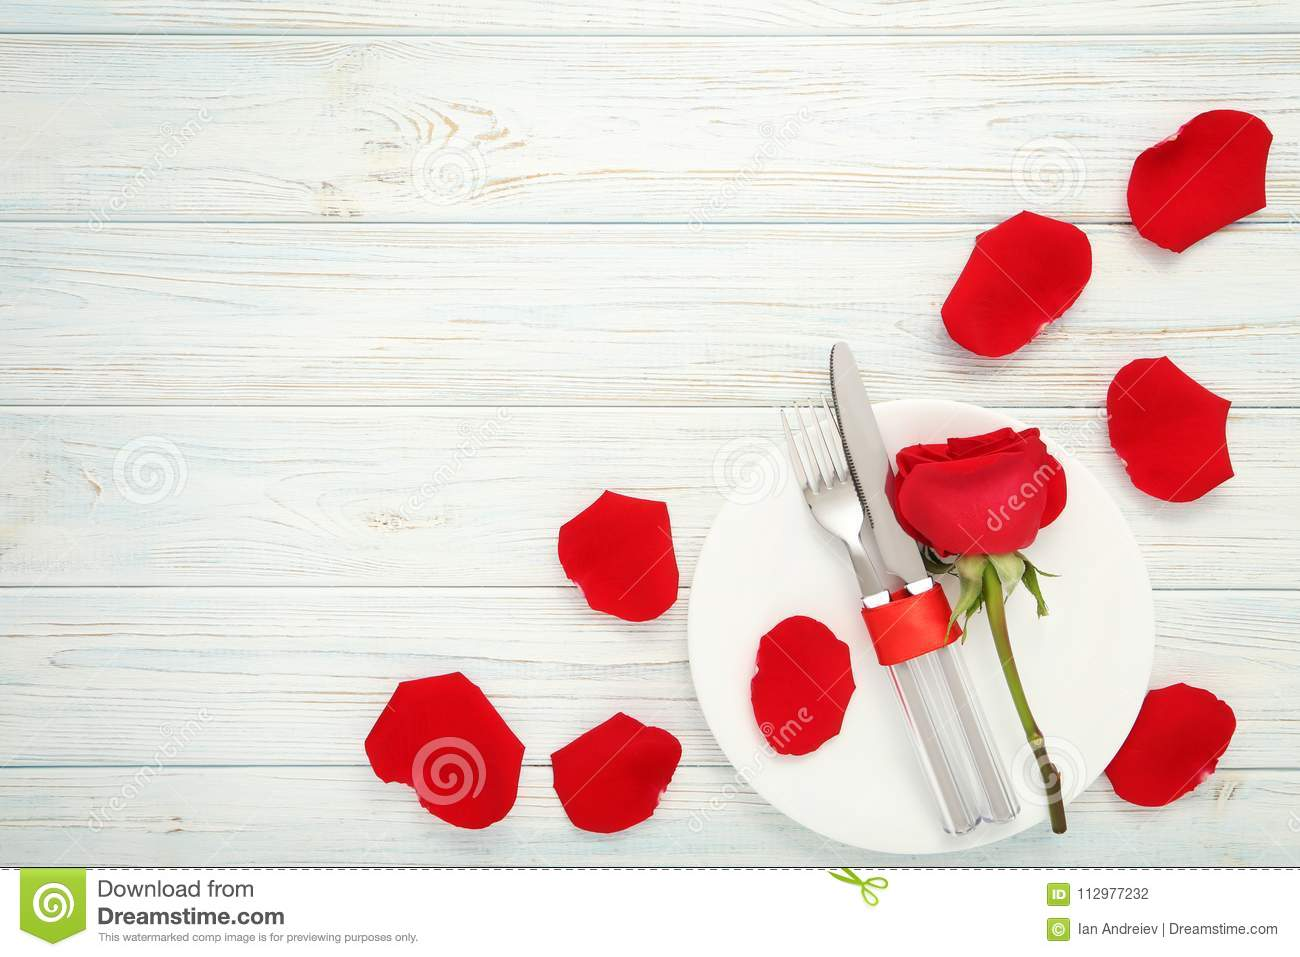 Kitchen cutlery with red rose